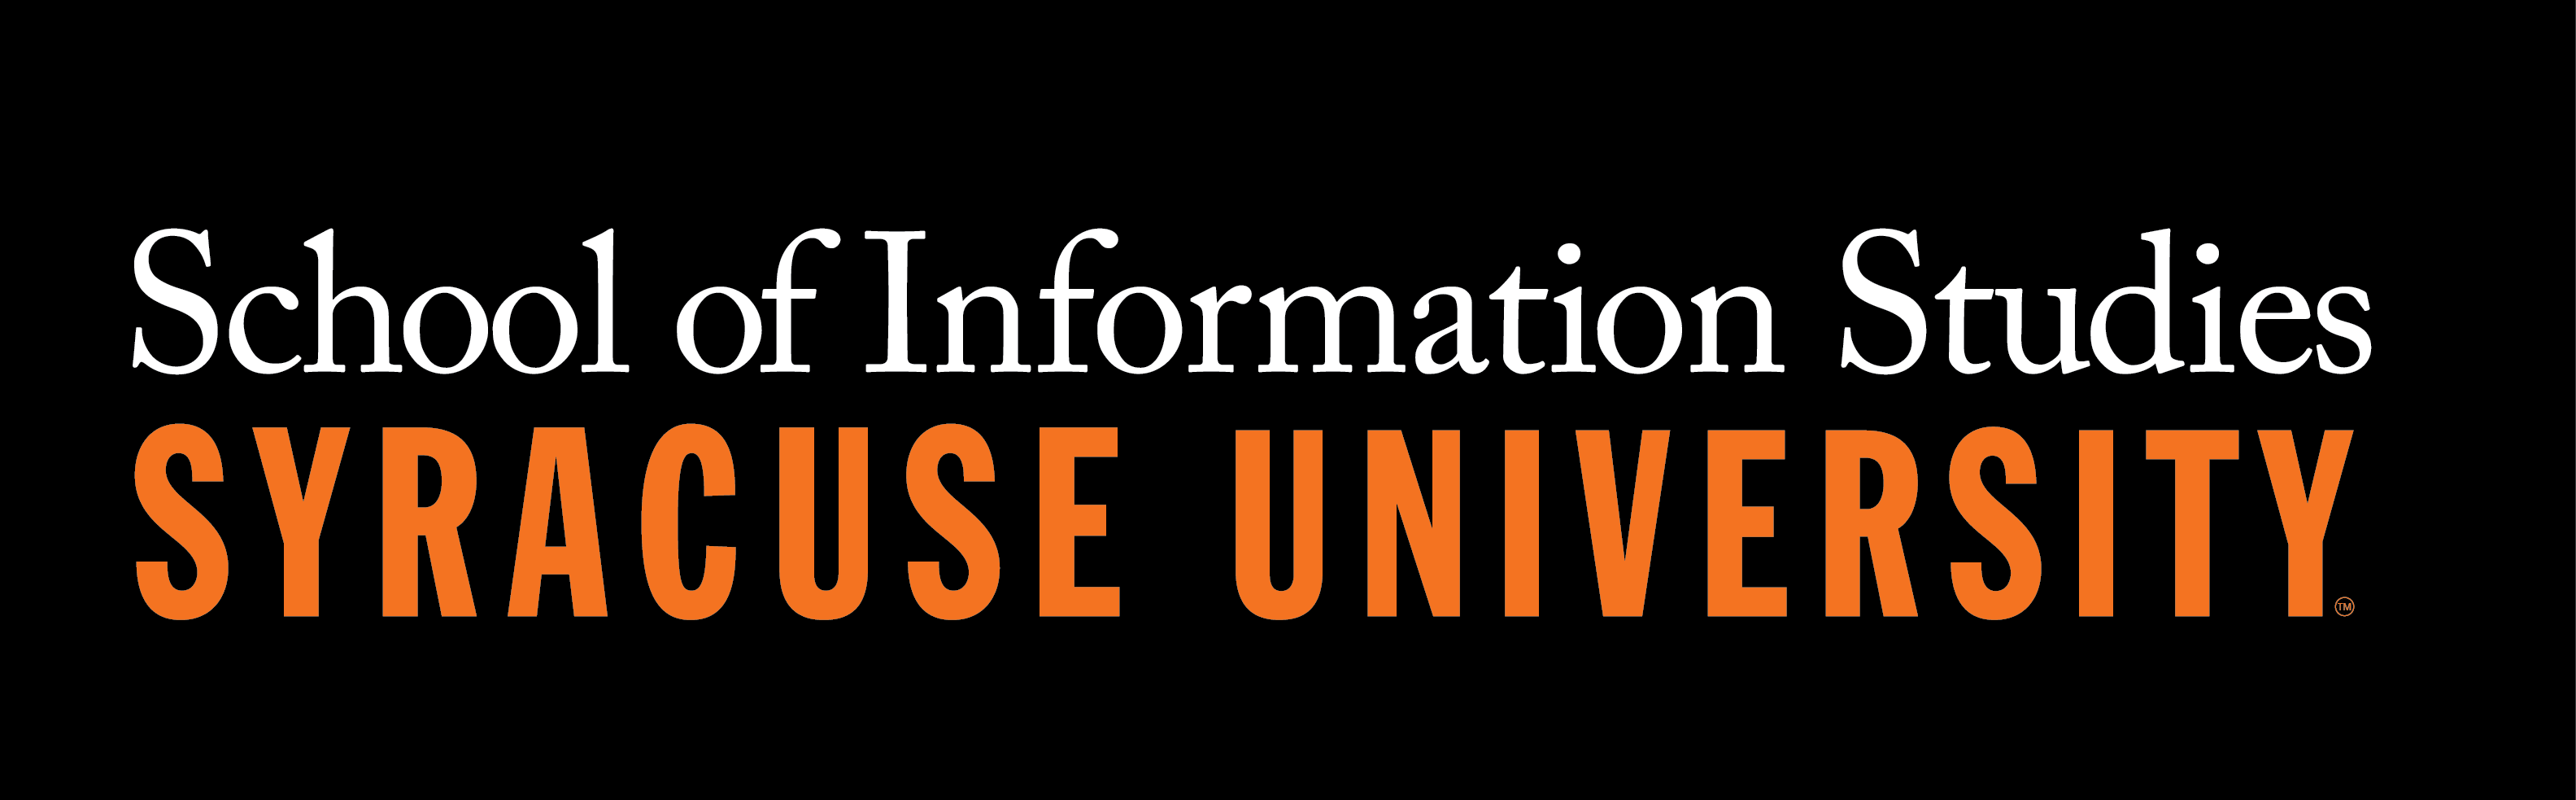 logo for the School of Information Studies at Syracuse University